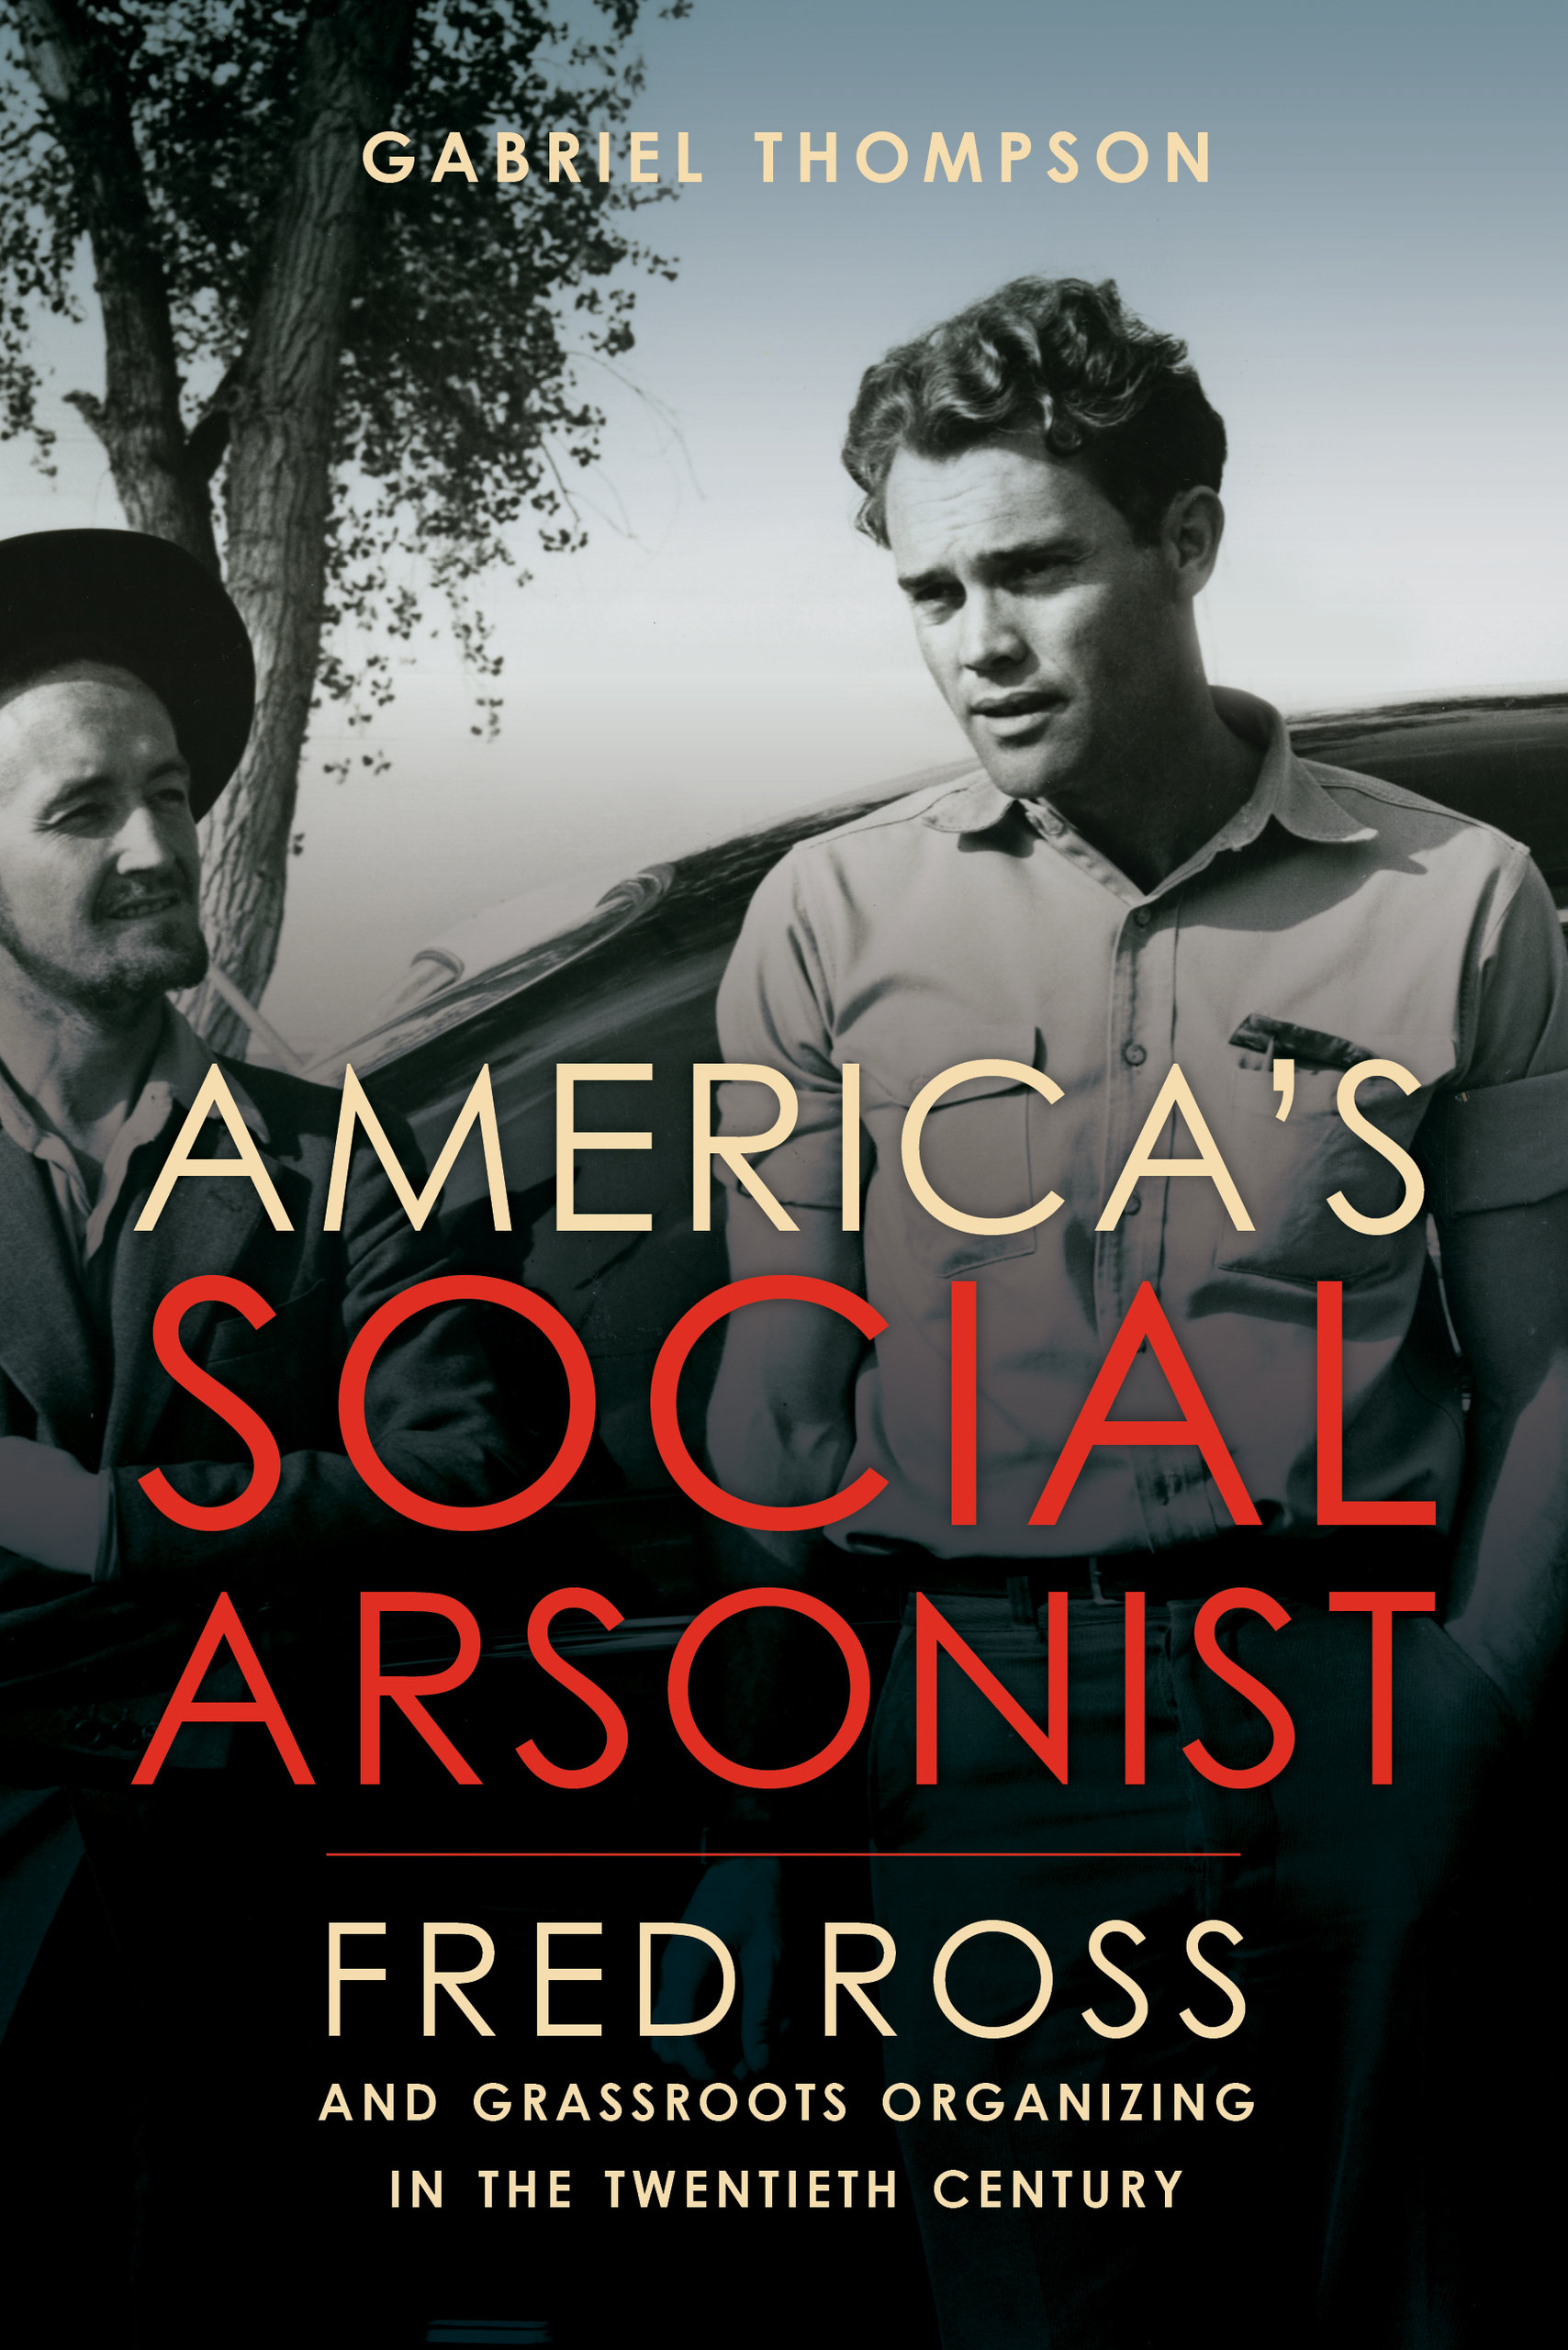 Review of America's Social Arsonist: Fred Ross and Grassroots Organizing in the Twentieth Century